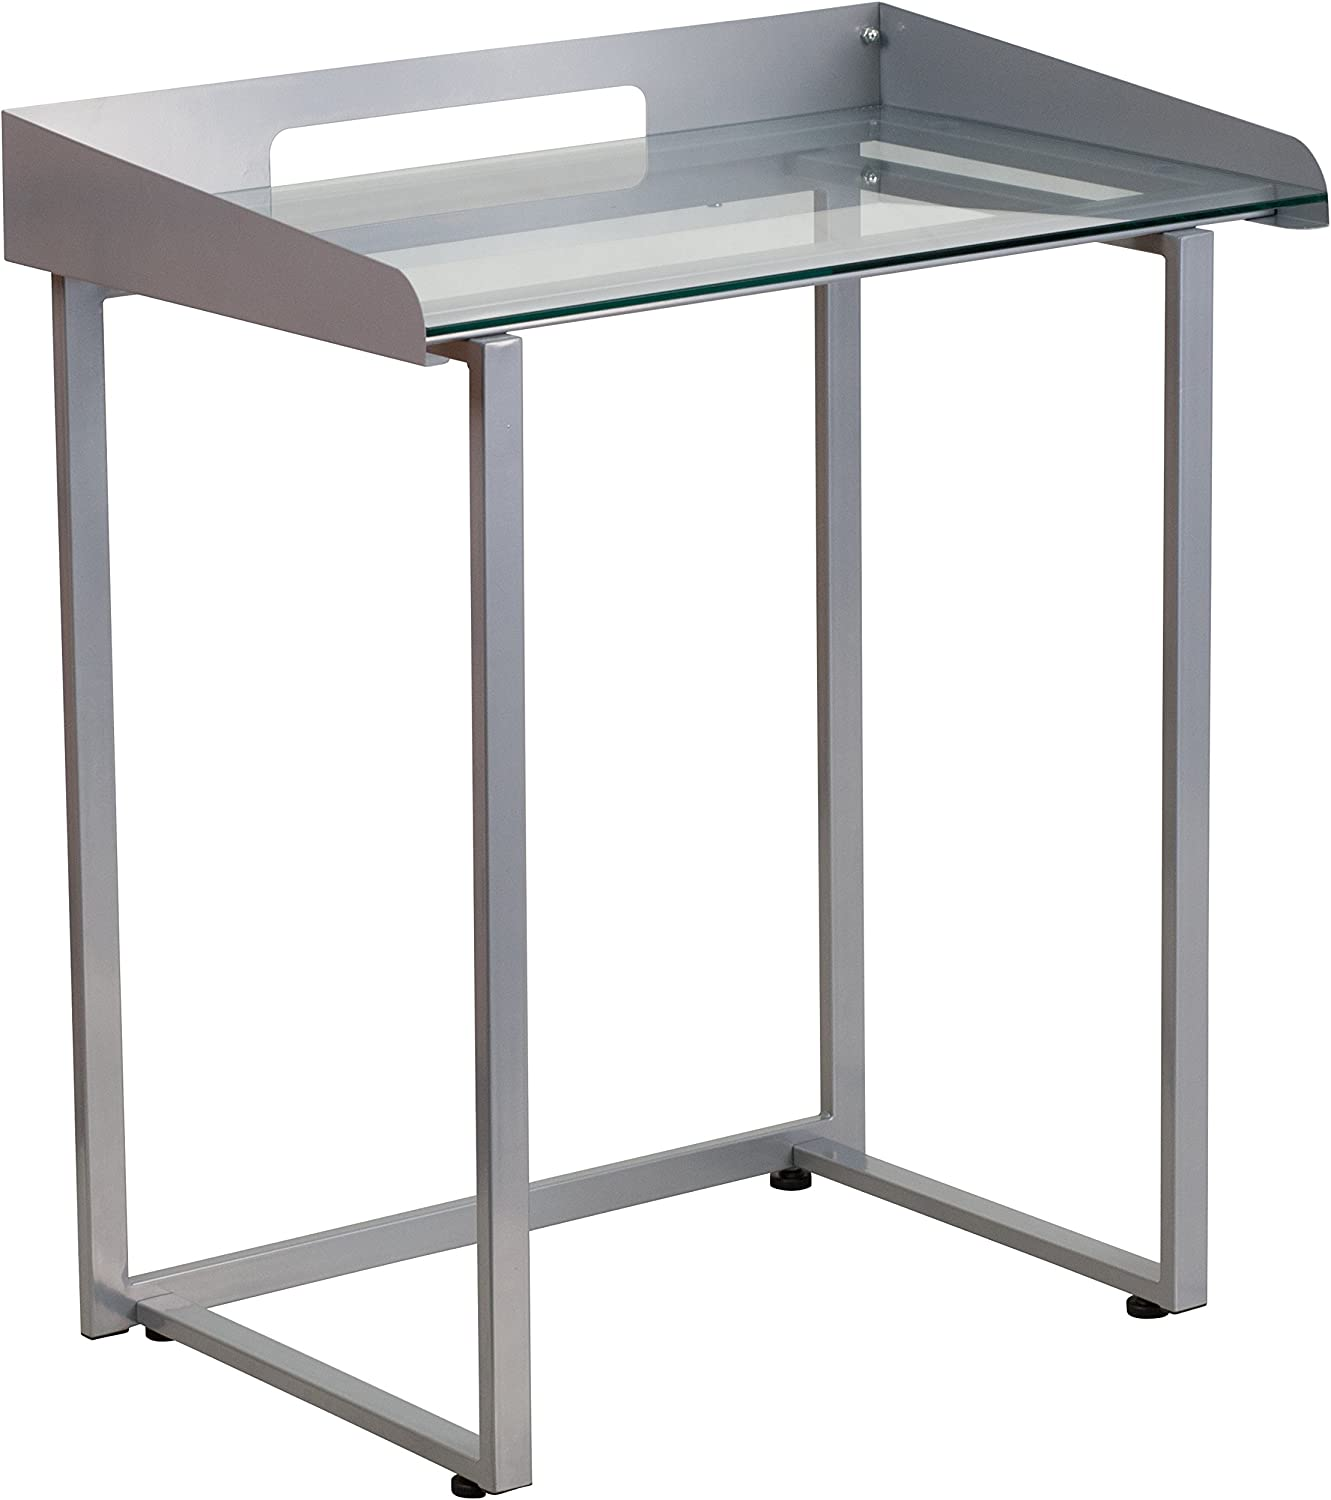 Flash Furniture Contemporary Desk with Clear Tempered Glass and Frame, Silver